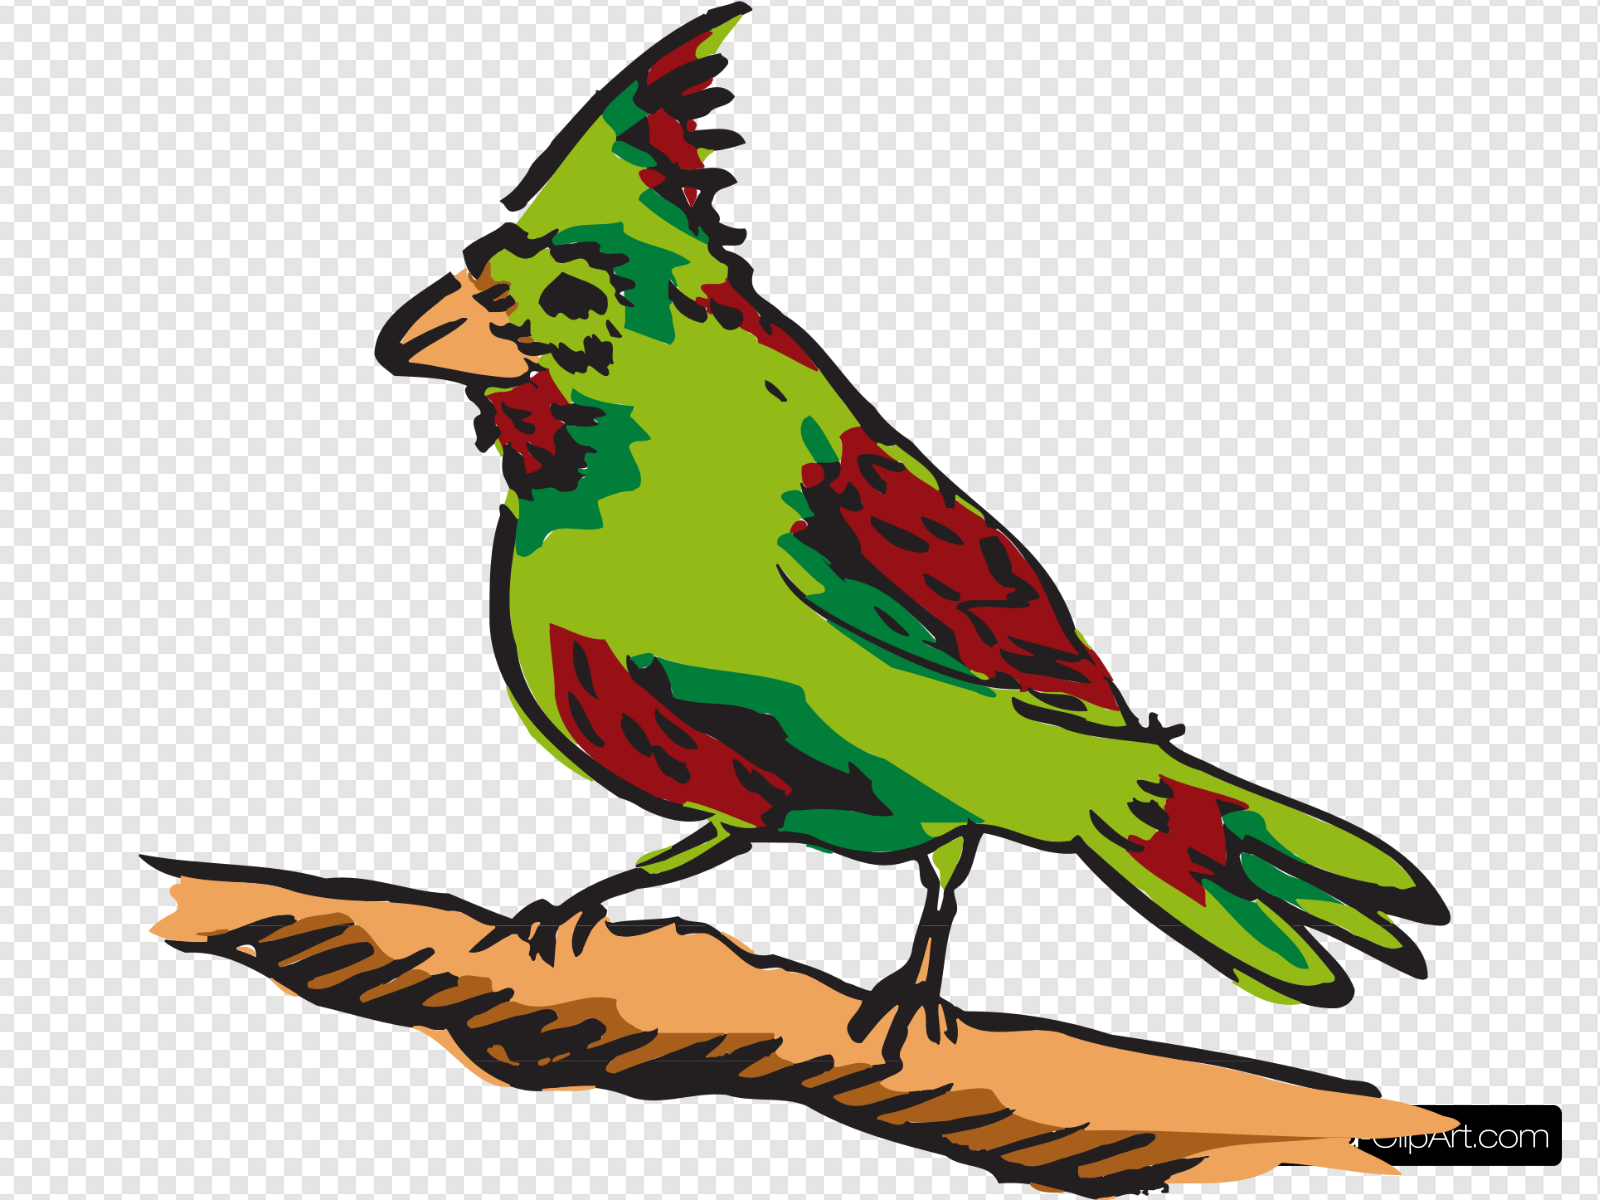 Green And Red Perched Bird Clip art, Icon and SVG.